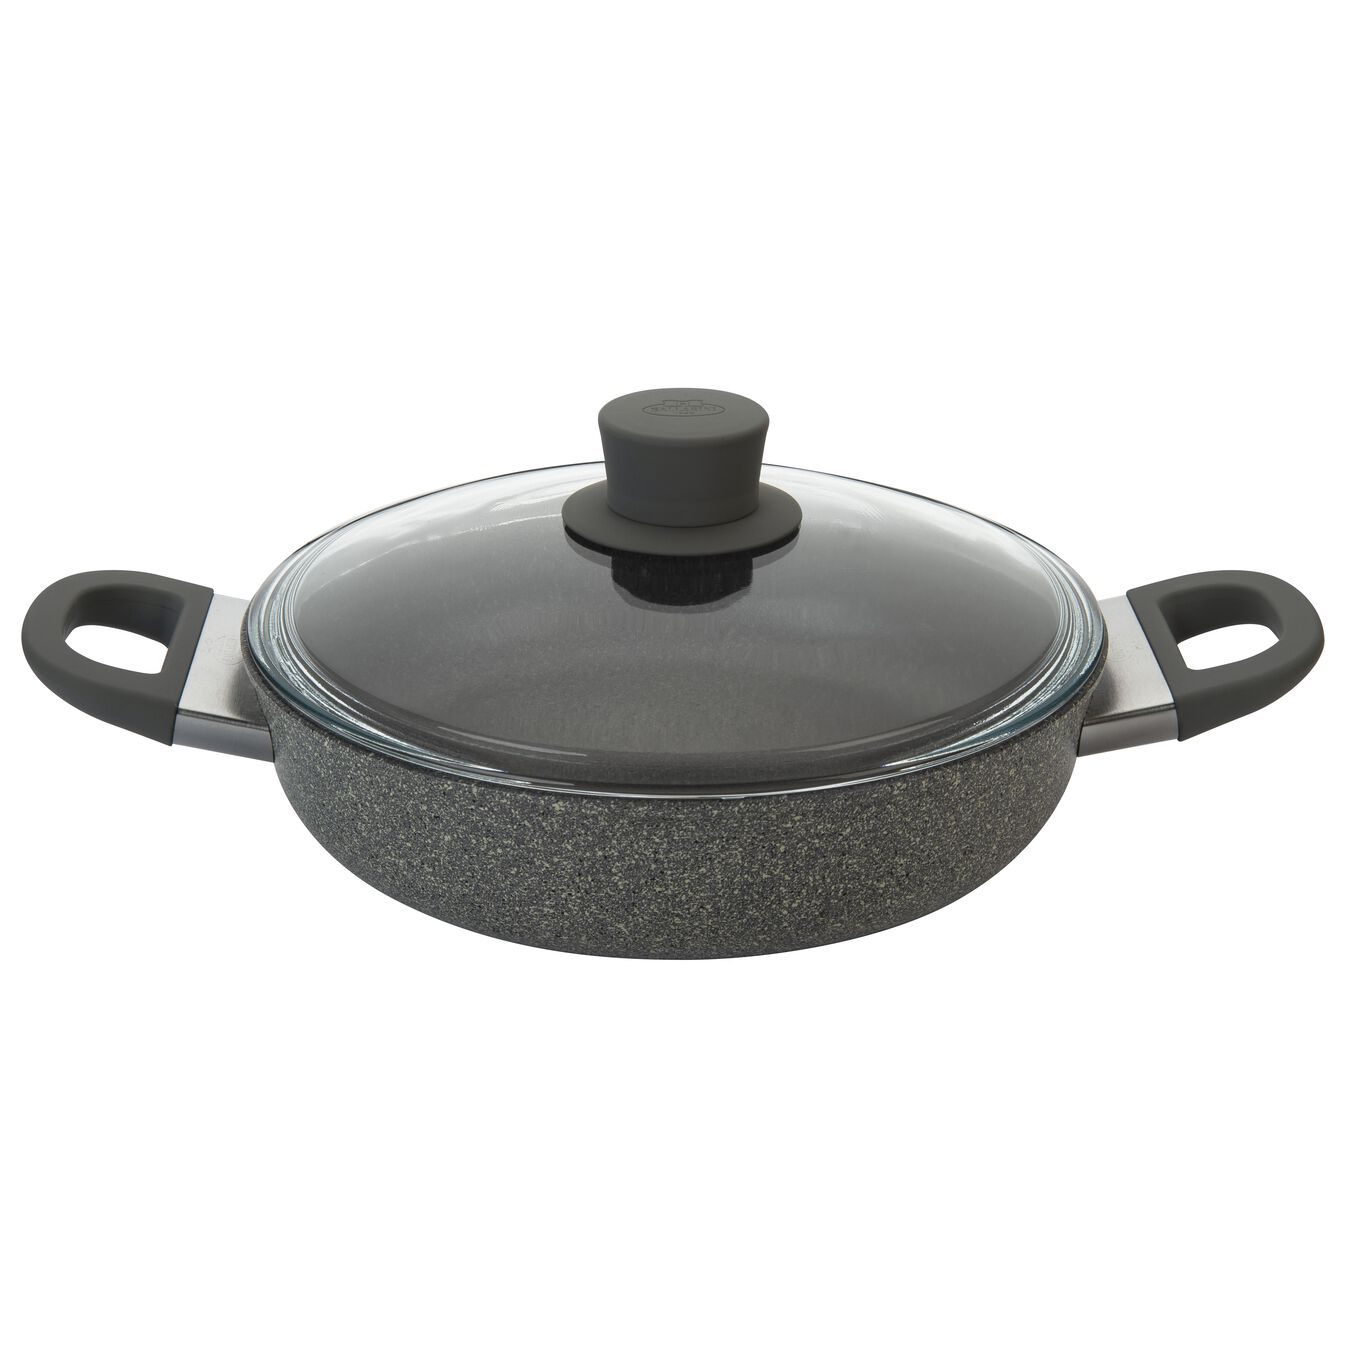 round Saucier and sauteuse with glass lid, stone grey,,large 1